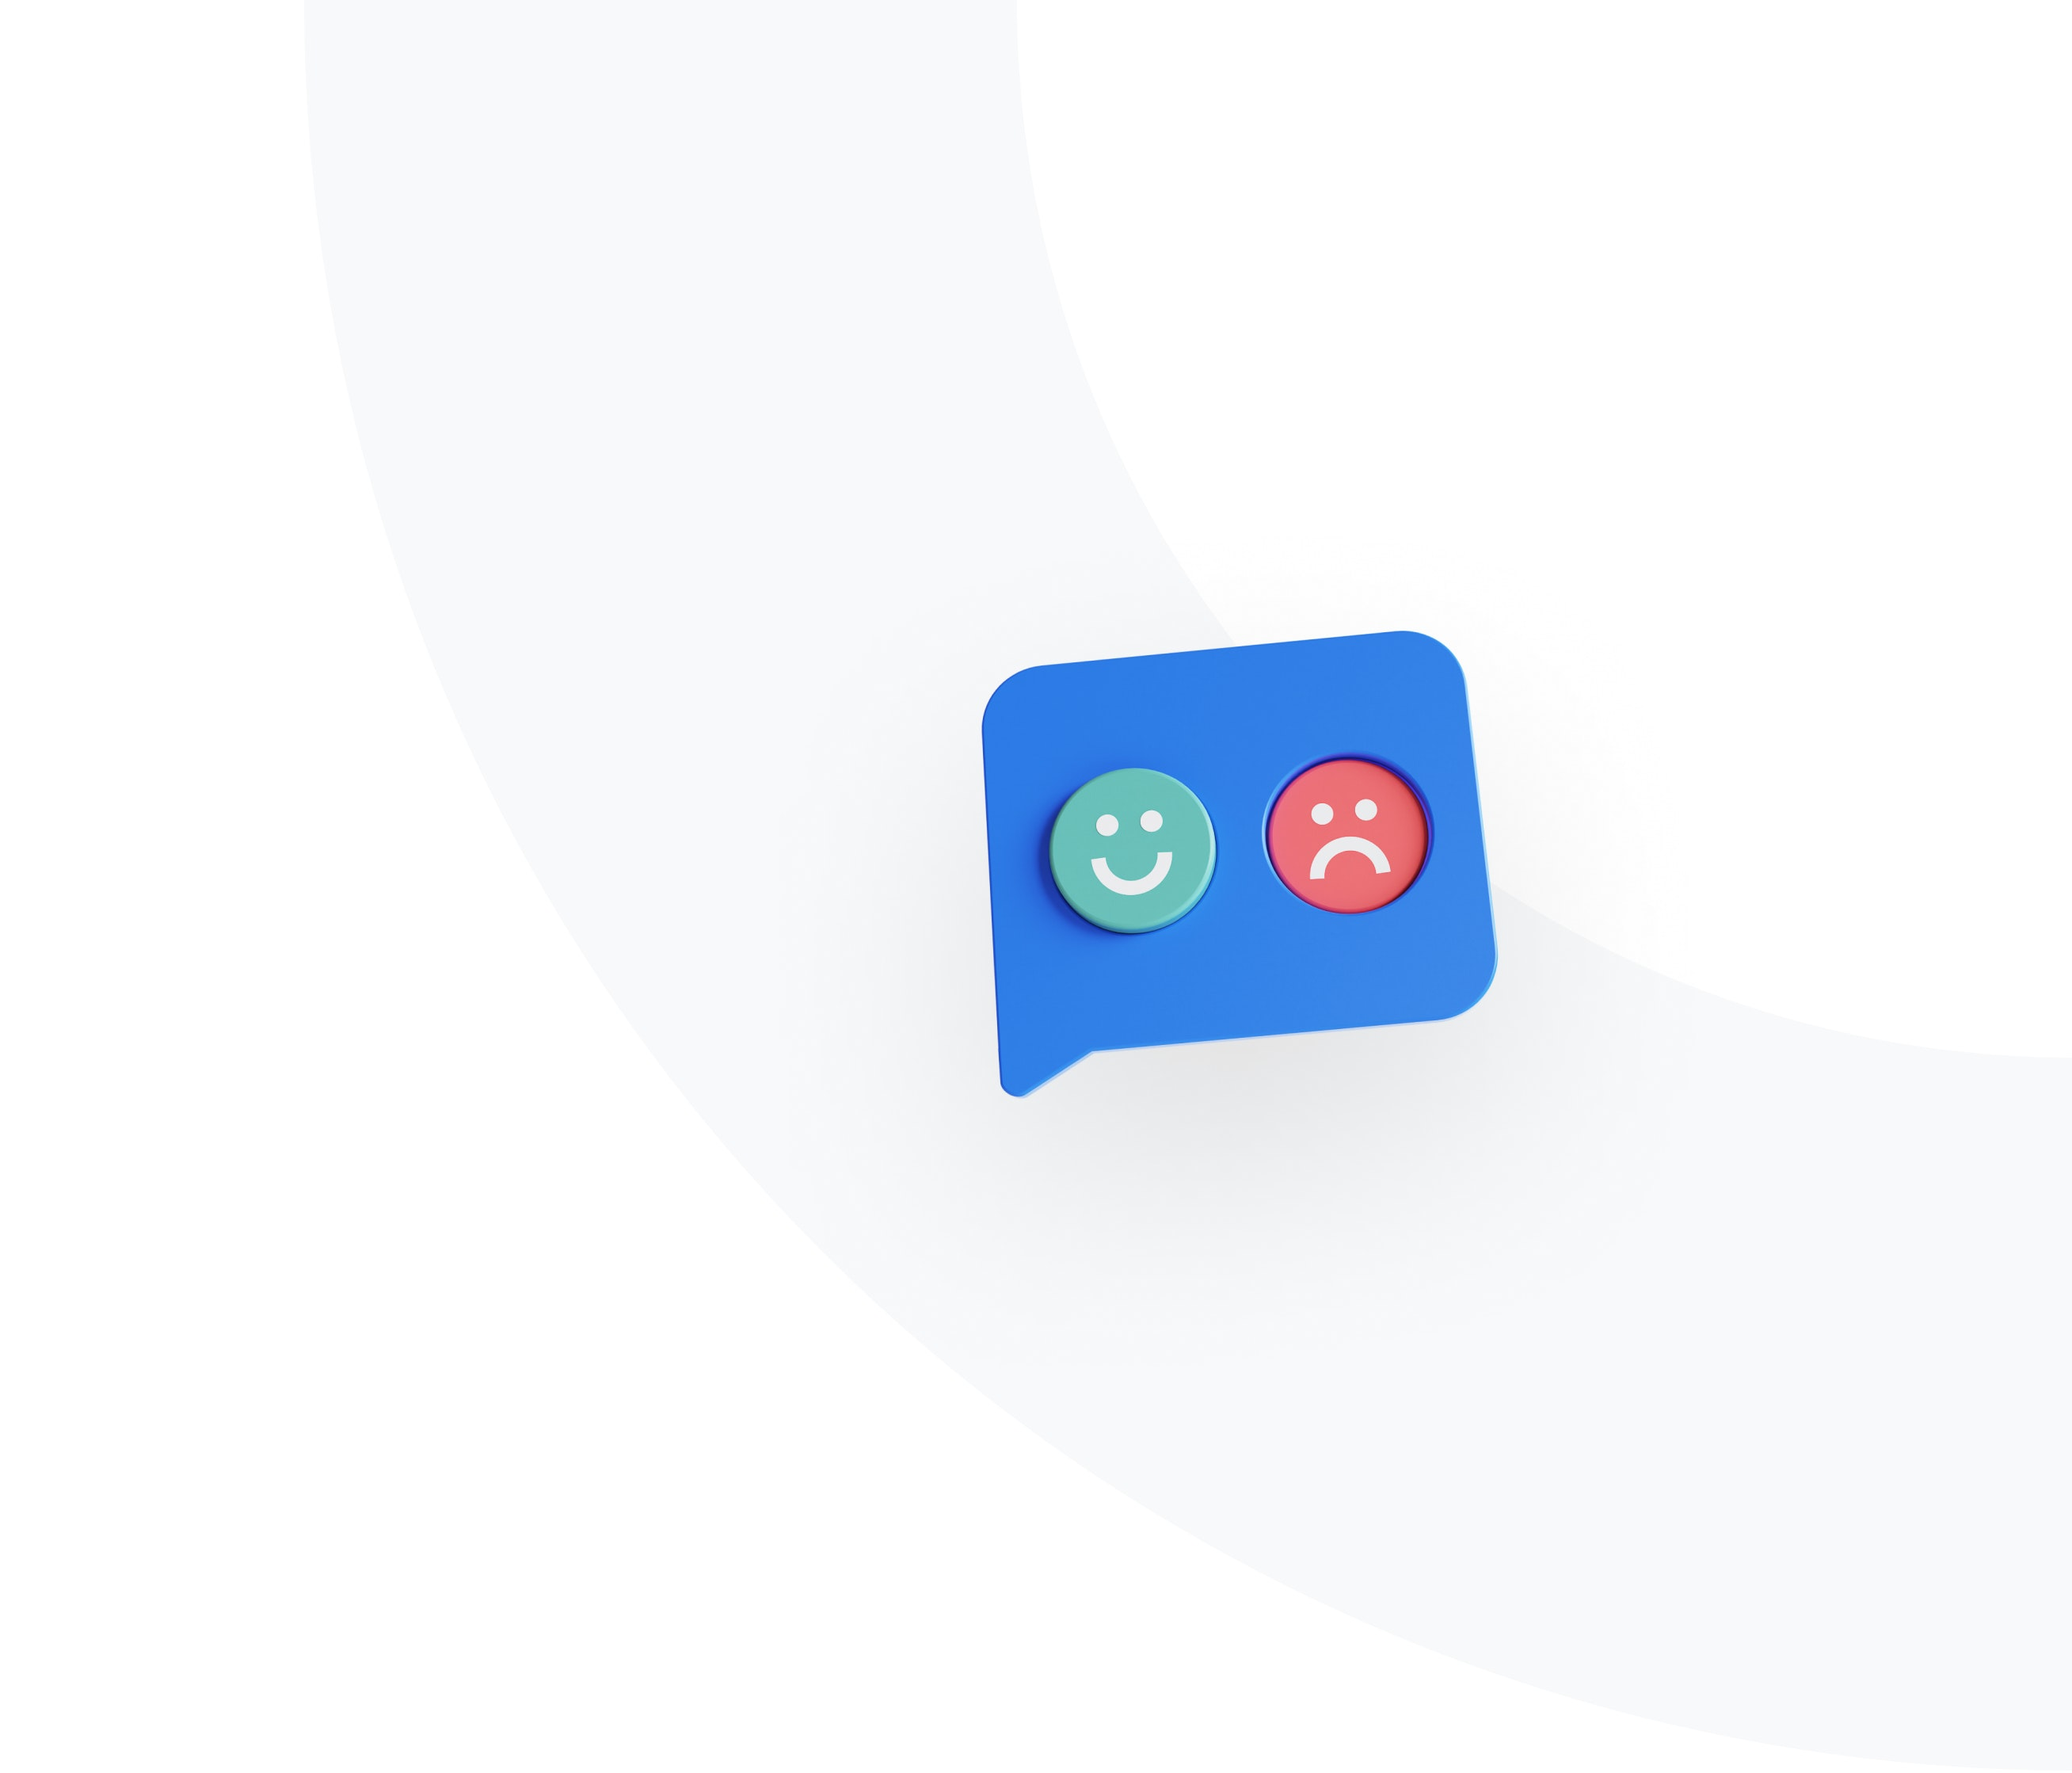 Get post-launch feedback from users